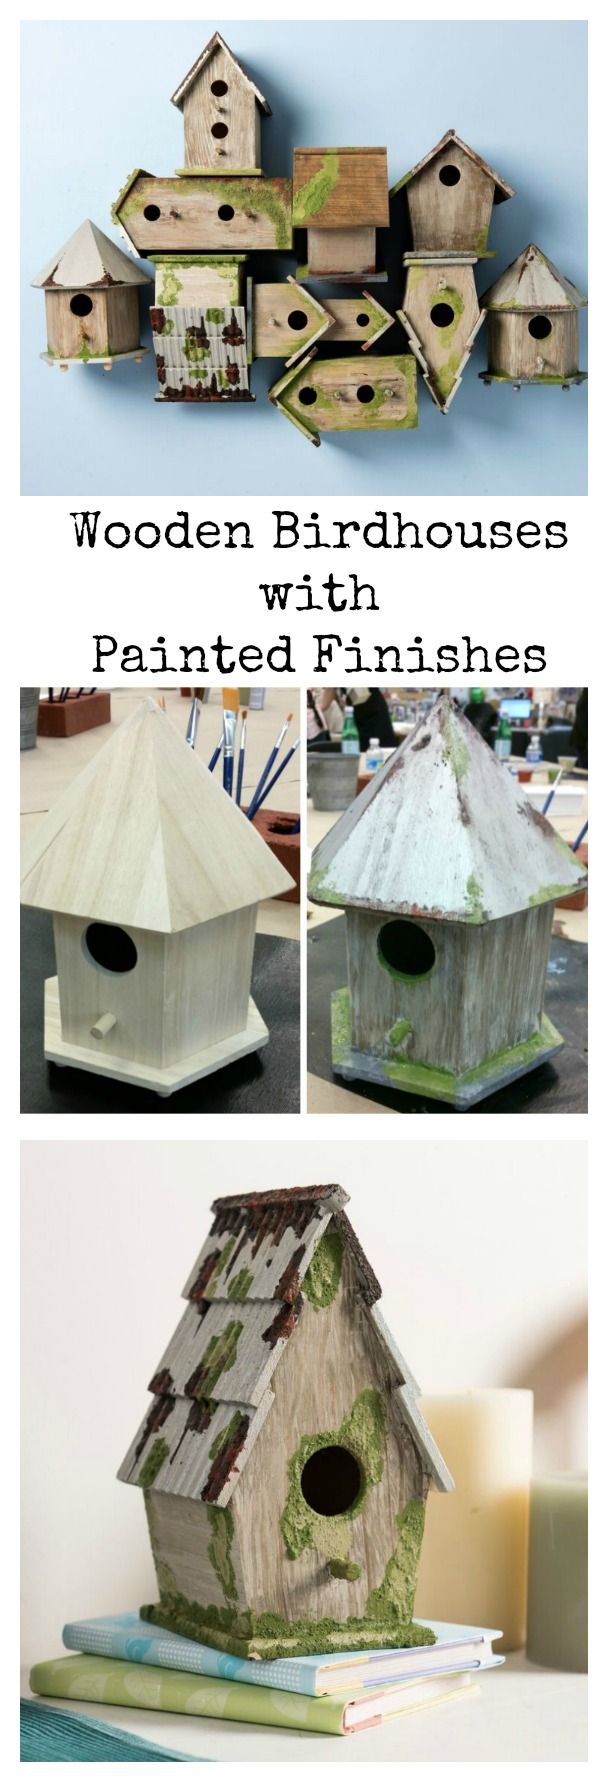 Decorative Wooden Birdhouses With Folkart Painted Finishes Amy